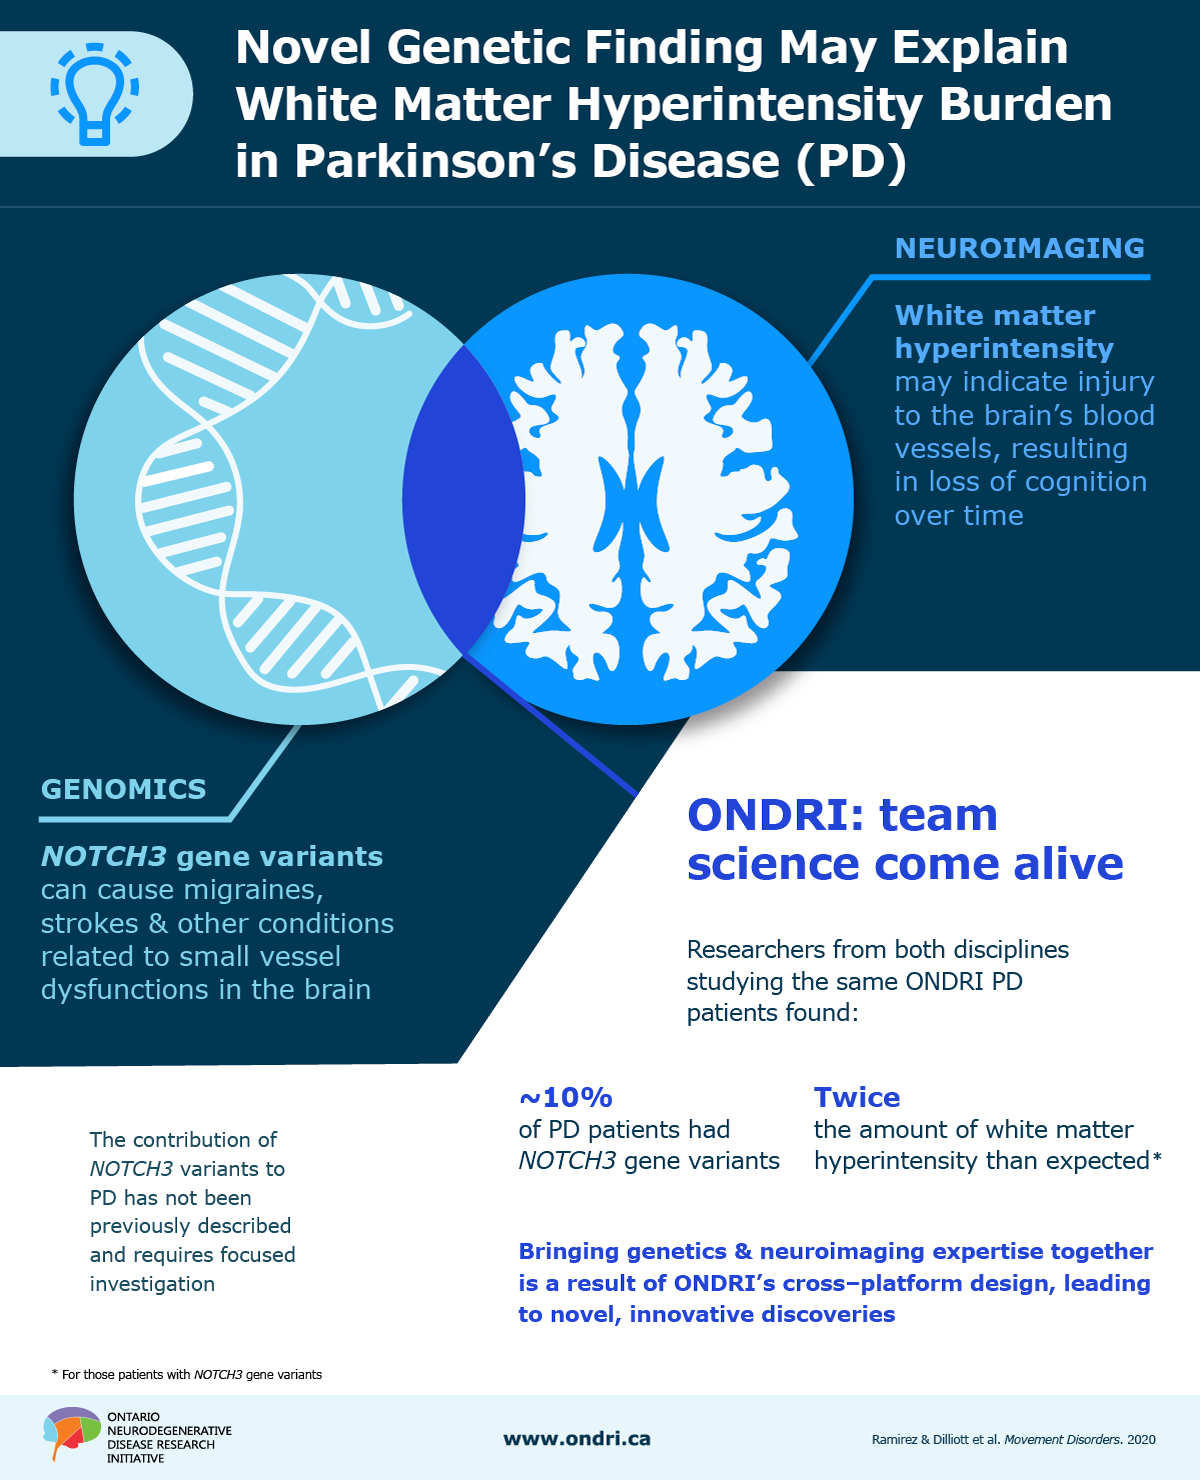 Parkinson's Disease, NOTCH3 Genetic Variants, and White Matter Hyperintensities